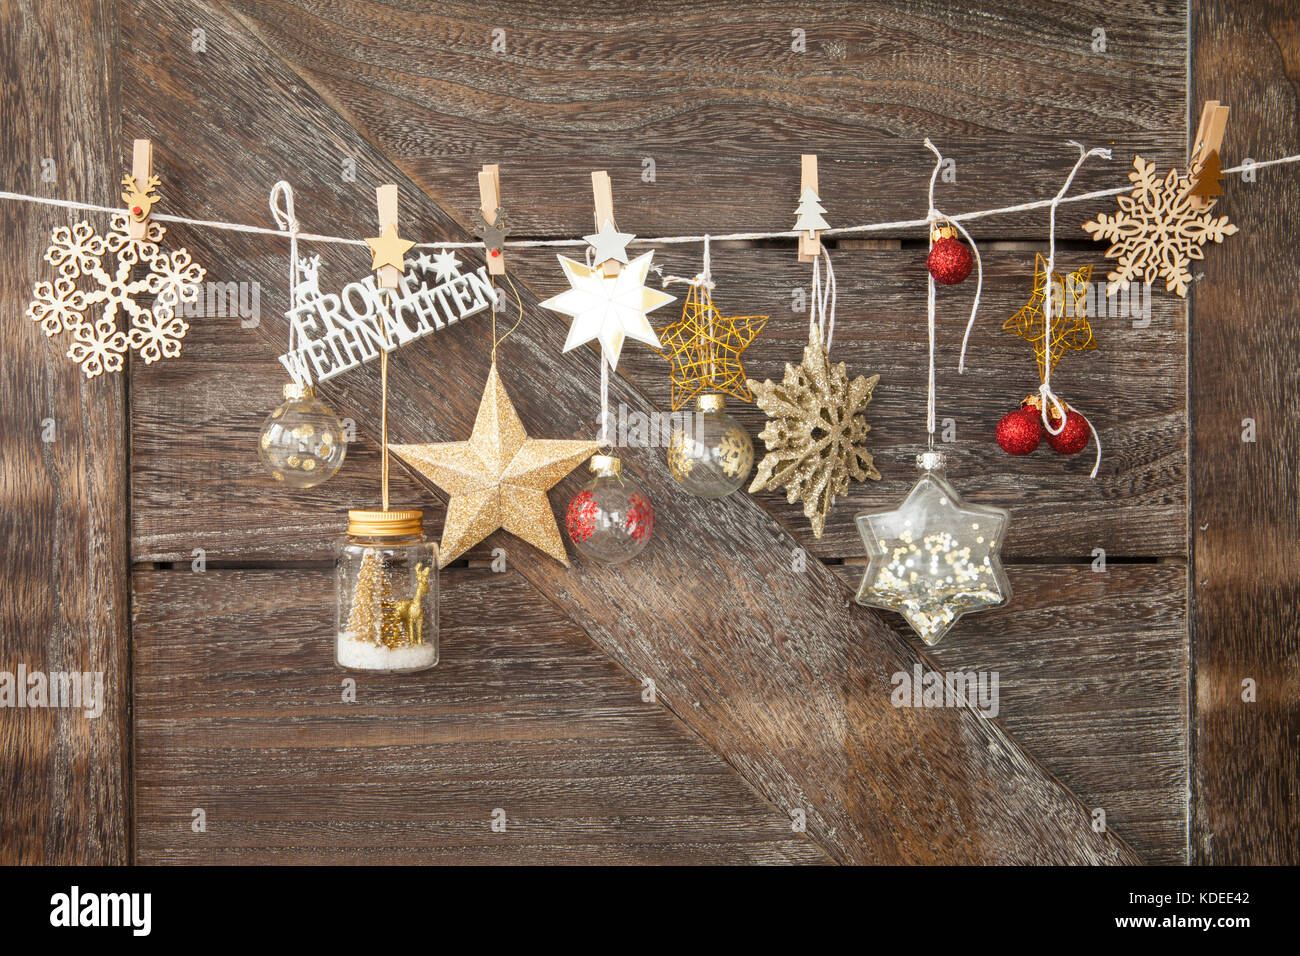 Rustic Wooden Christmas Background With Festive Ornaments Frohe Weihnachten Translates To Merry